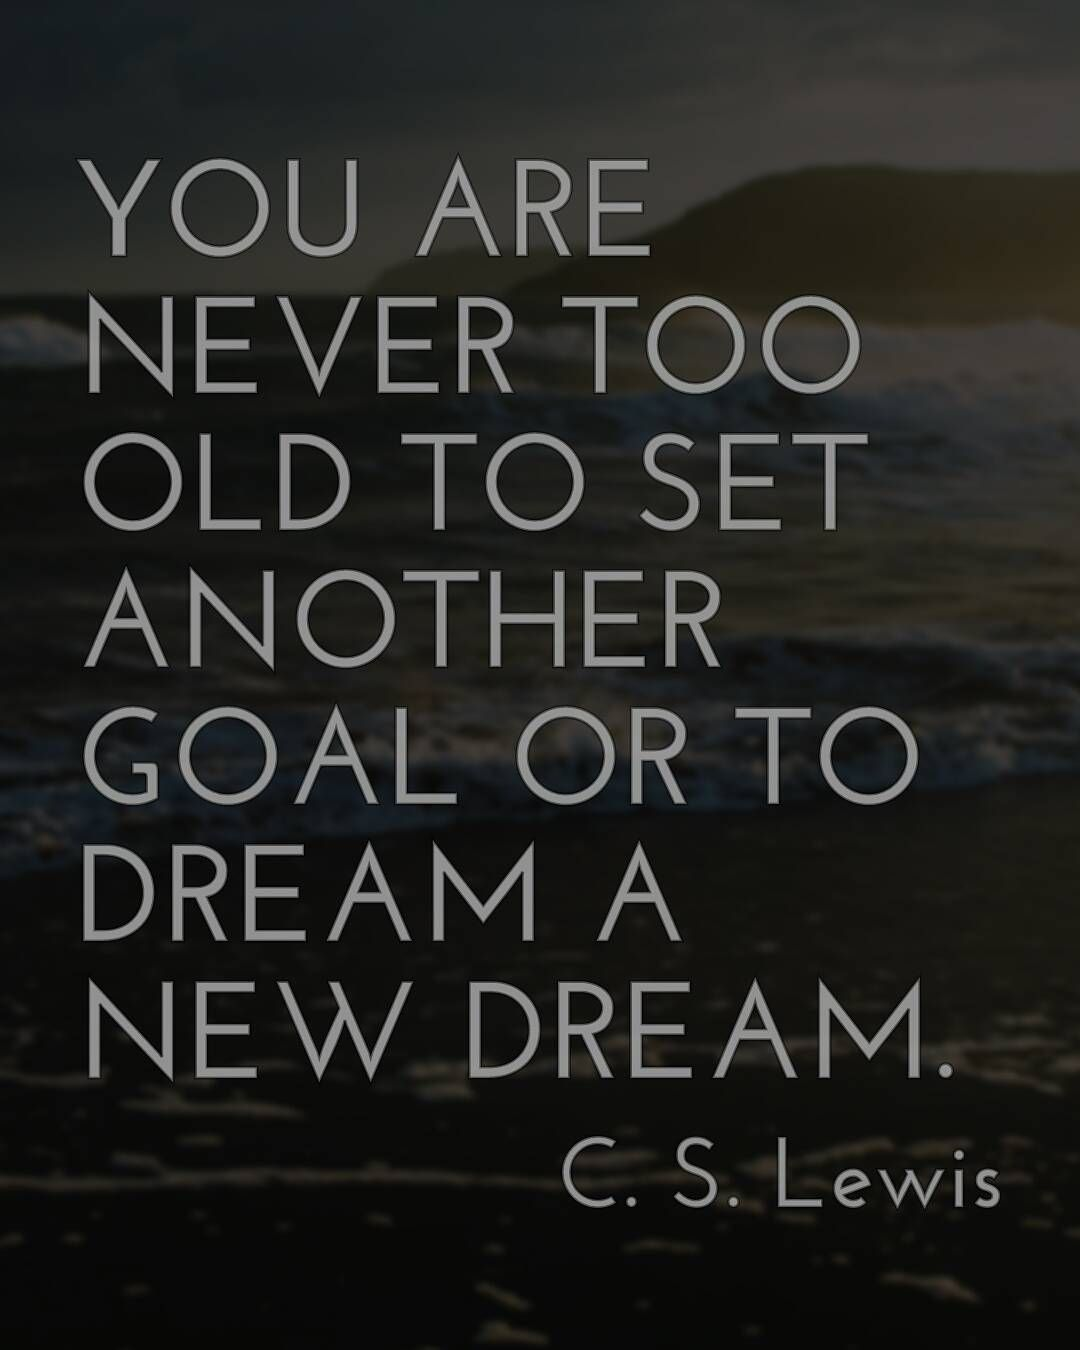 You are never too old to set another goal or to dream a new dream. C. S. Lewis Let inspiration come to you download Quotograph on Google Play. #advice #inspiring #inspirational #inspirationalquote #motivation #motivational #motivationalquote #quotes #quote #old #age #aging #goal #goals #dream #aspiration by Ed Zimbardi http://edzimbardi.com